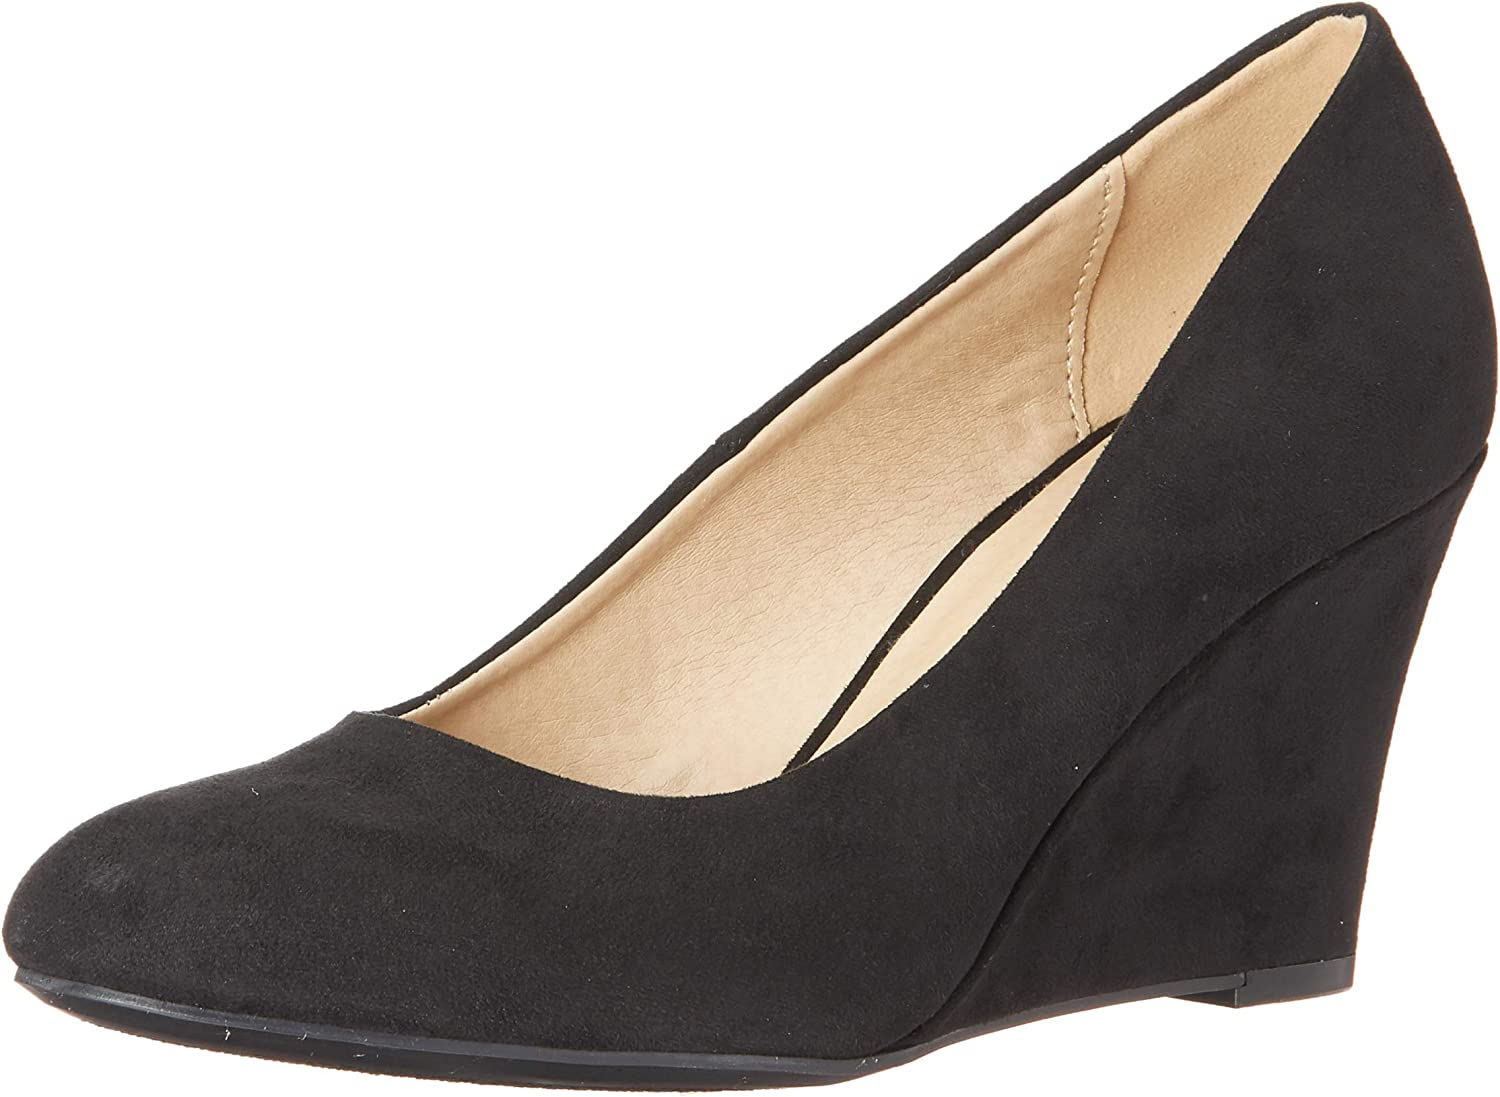 CL by Chinese Laundry Women's Lindsi Pump